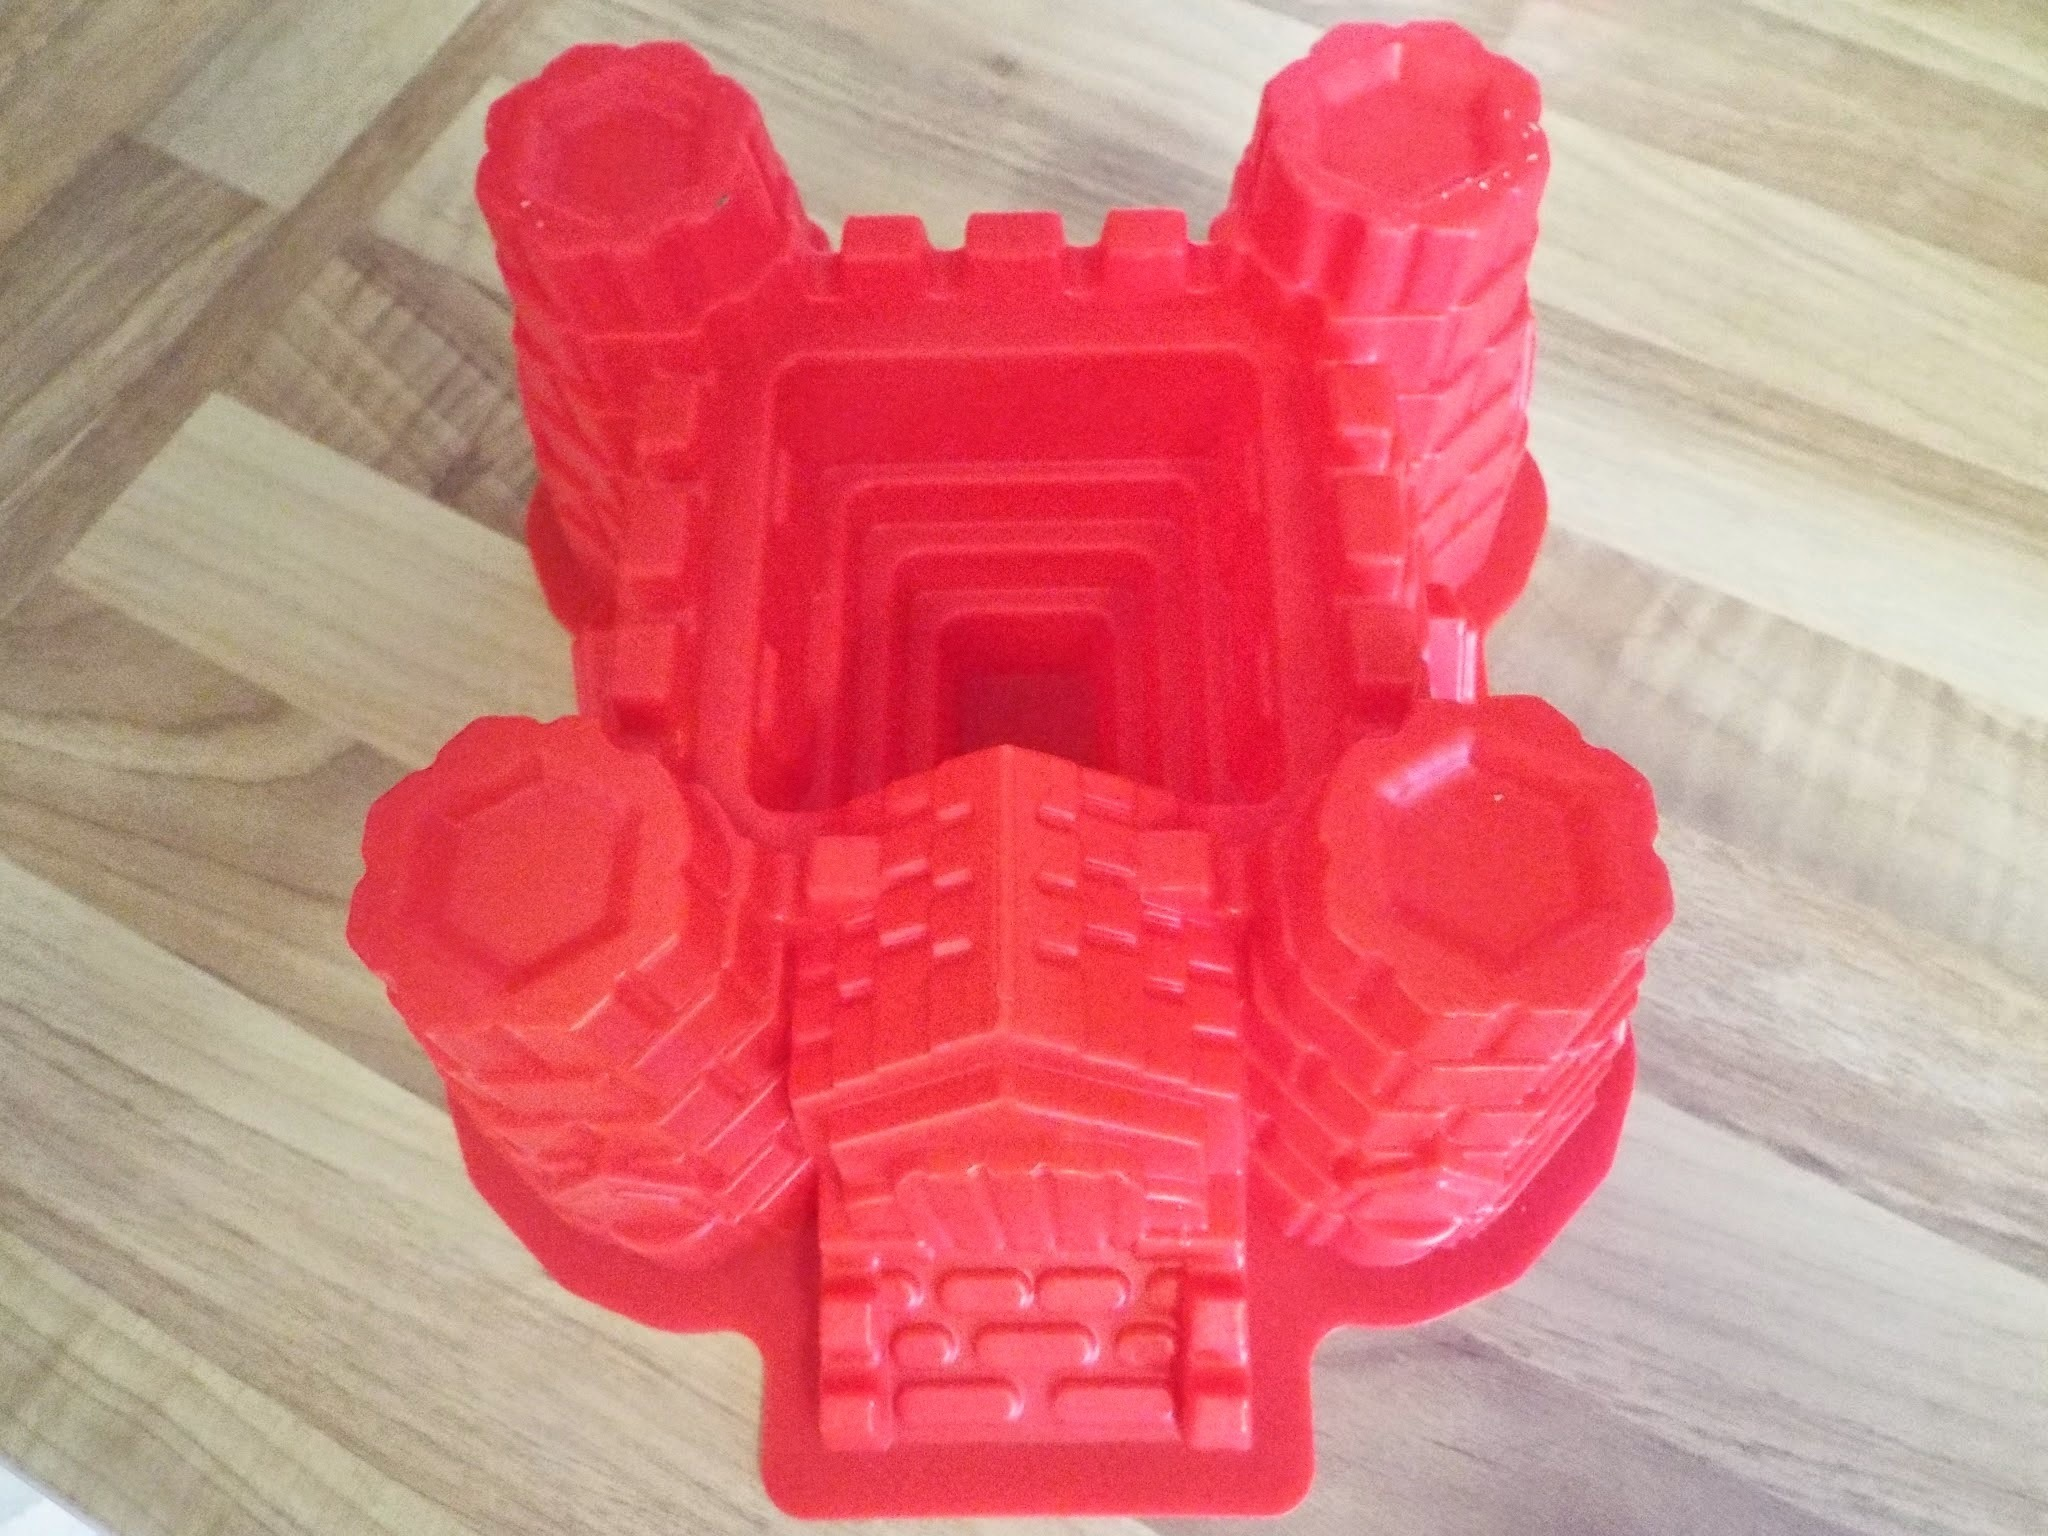 Lakeland's Sandcastle Mould Review and Lavender and Lemon Cake